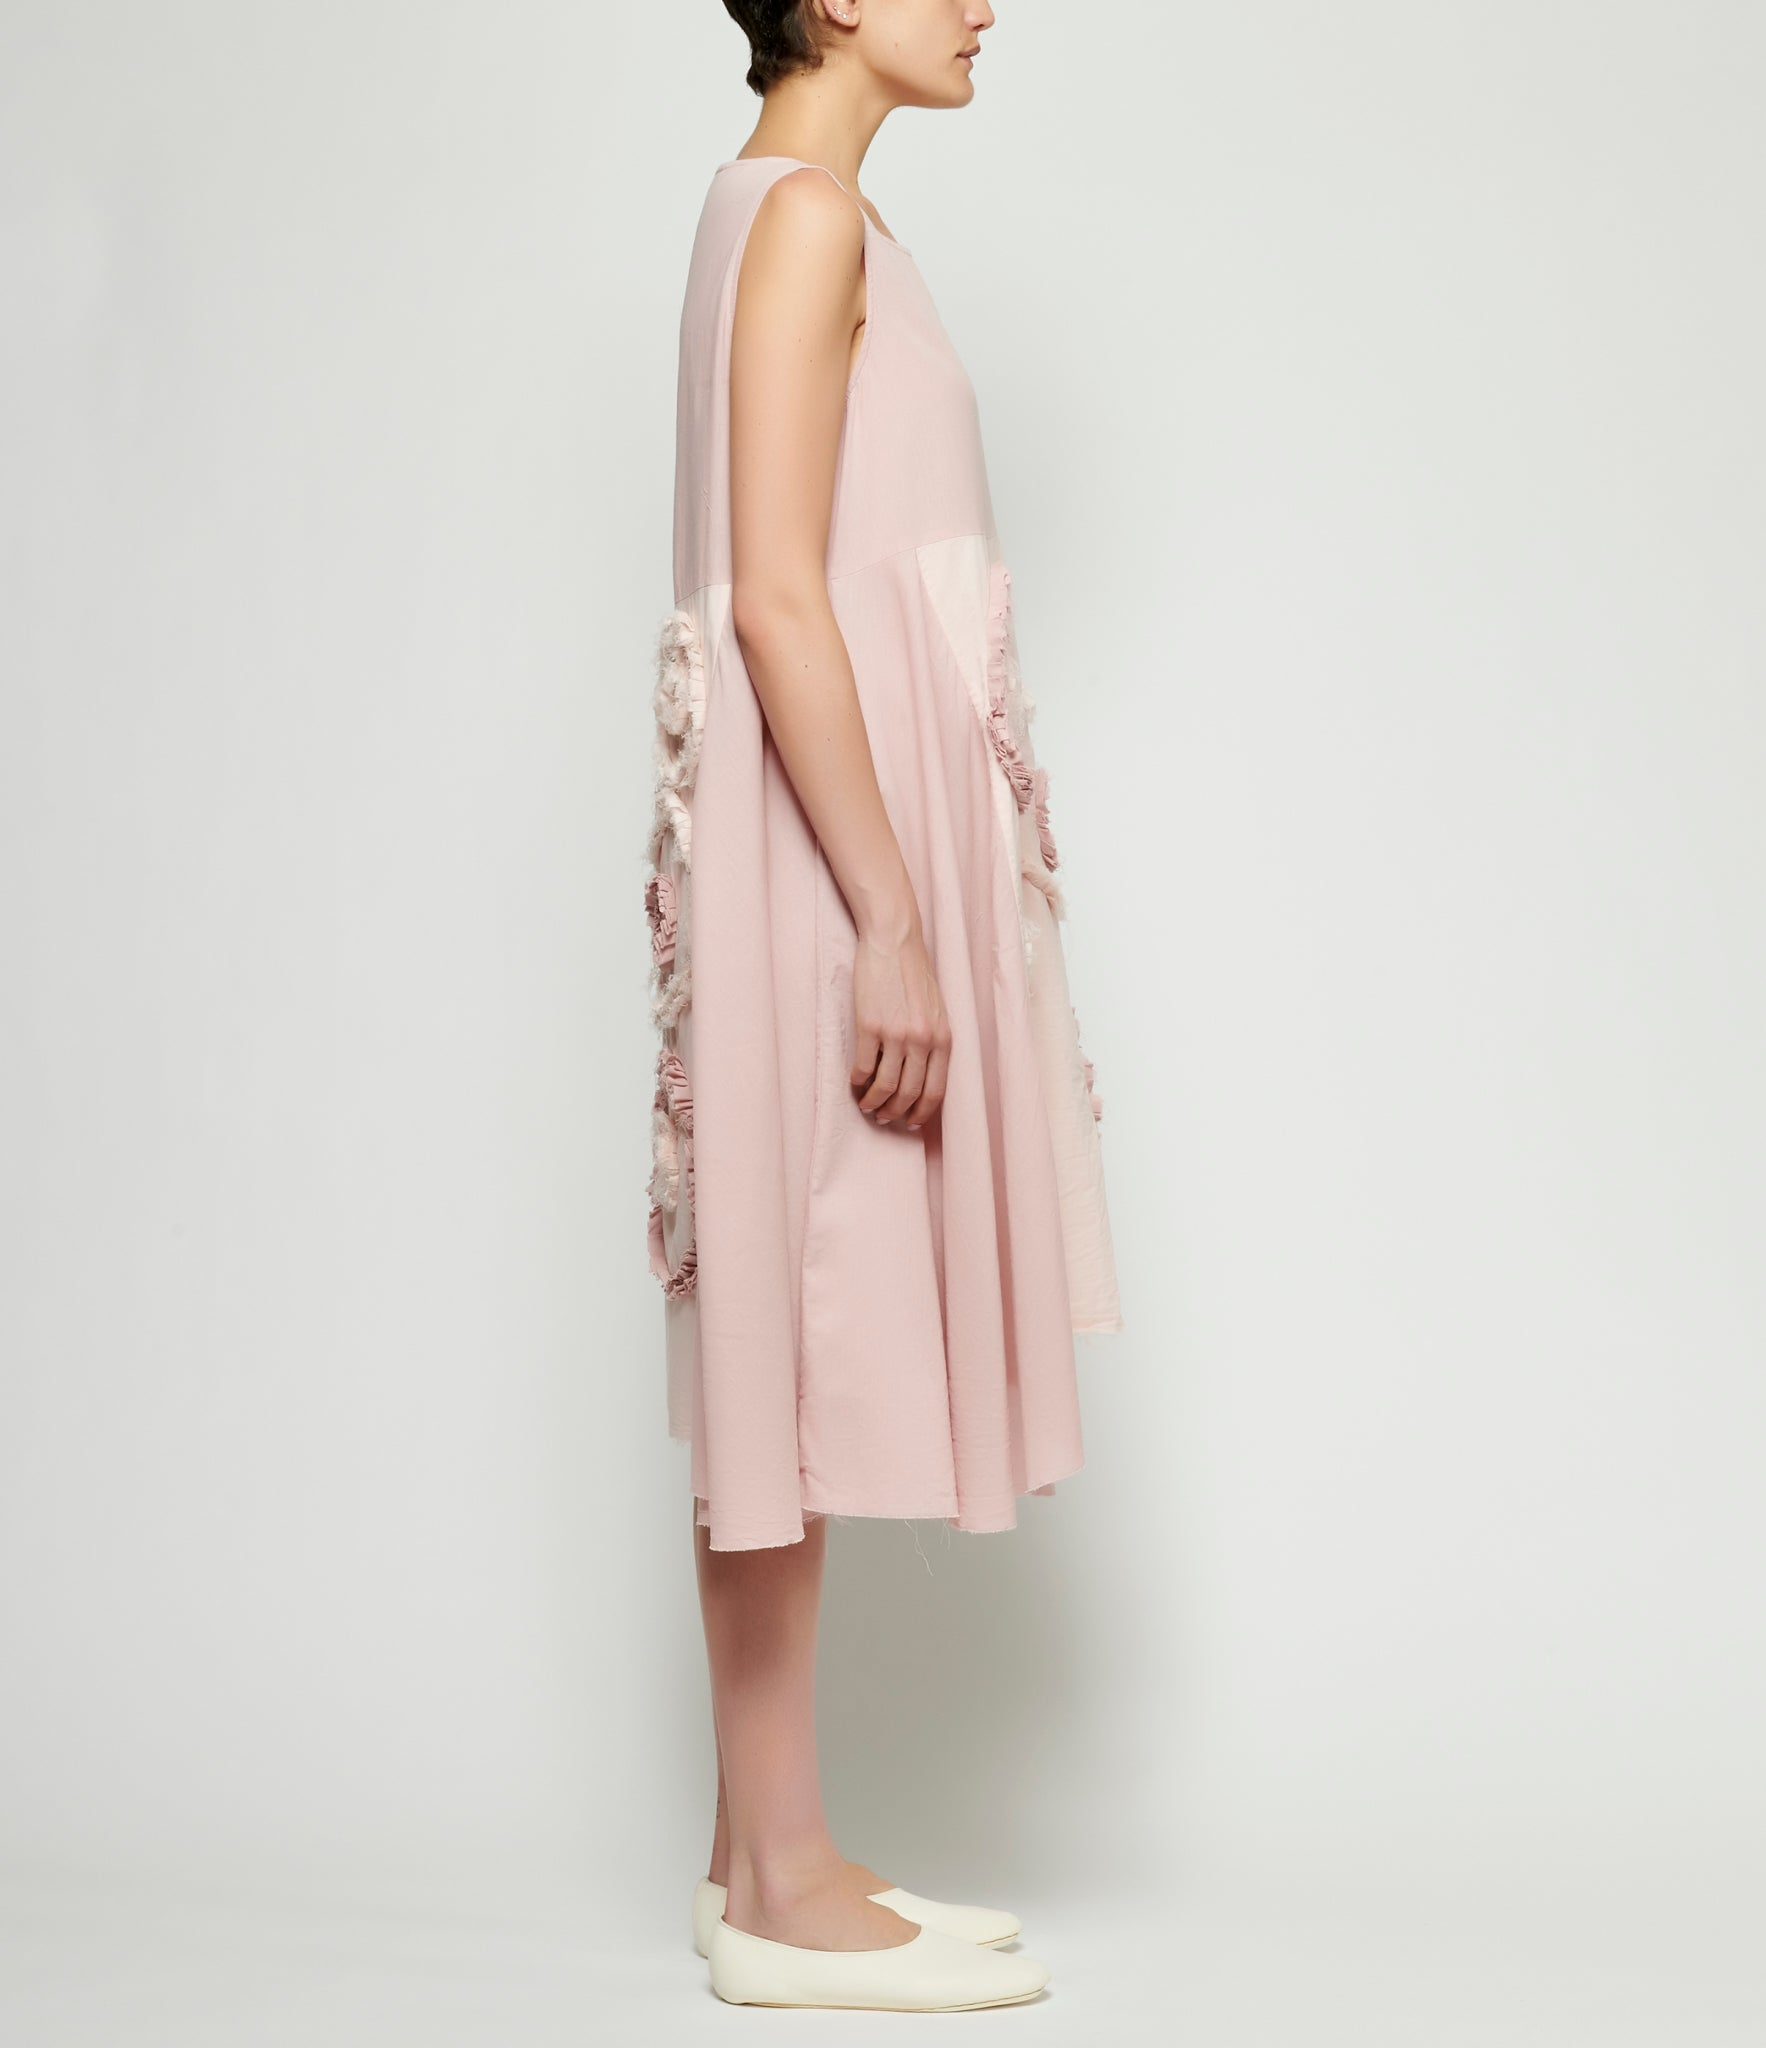 PHOS PHORO Blush Uneven Dress